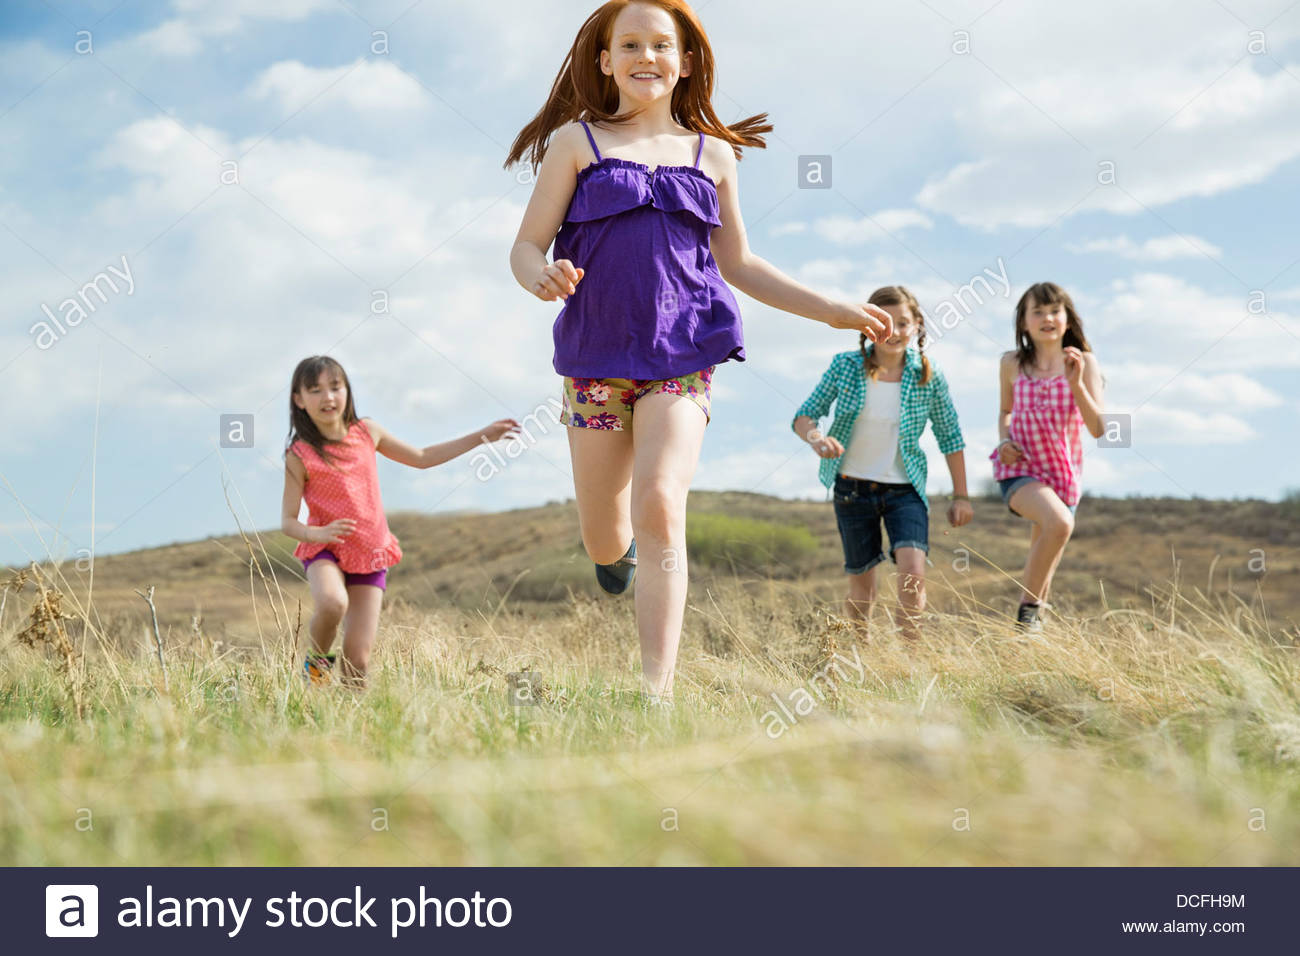 Cheerful schoolgirls running on field - Stock Image